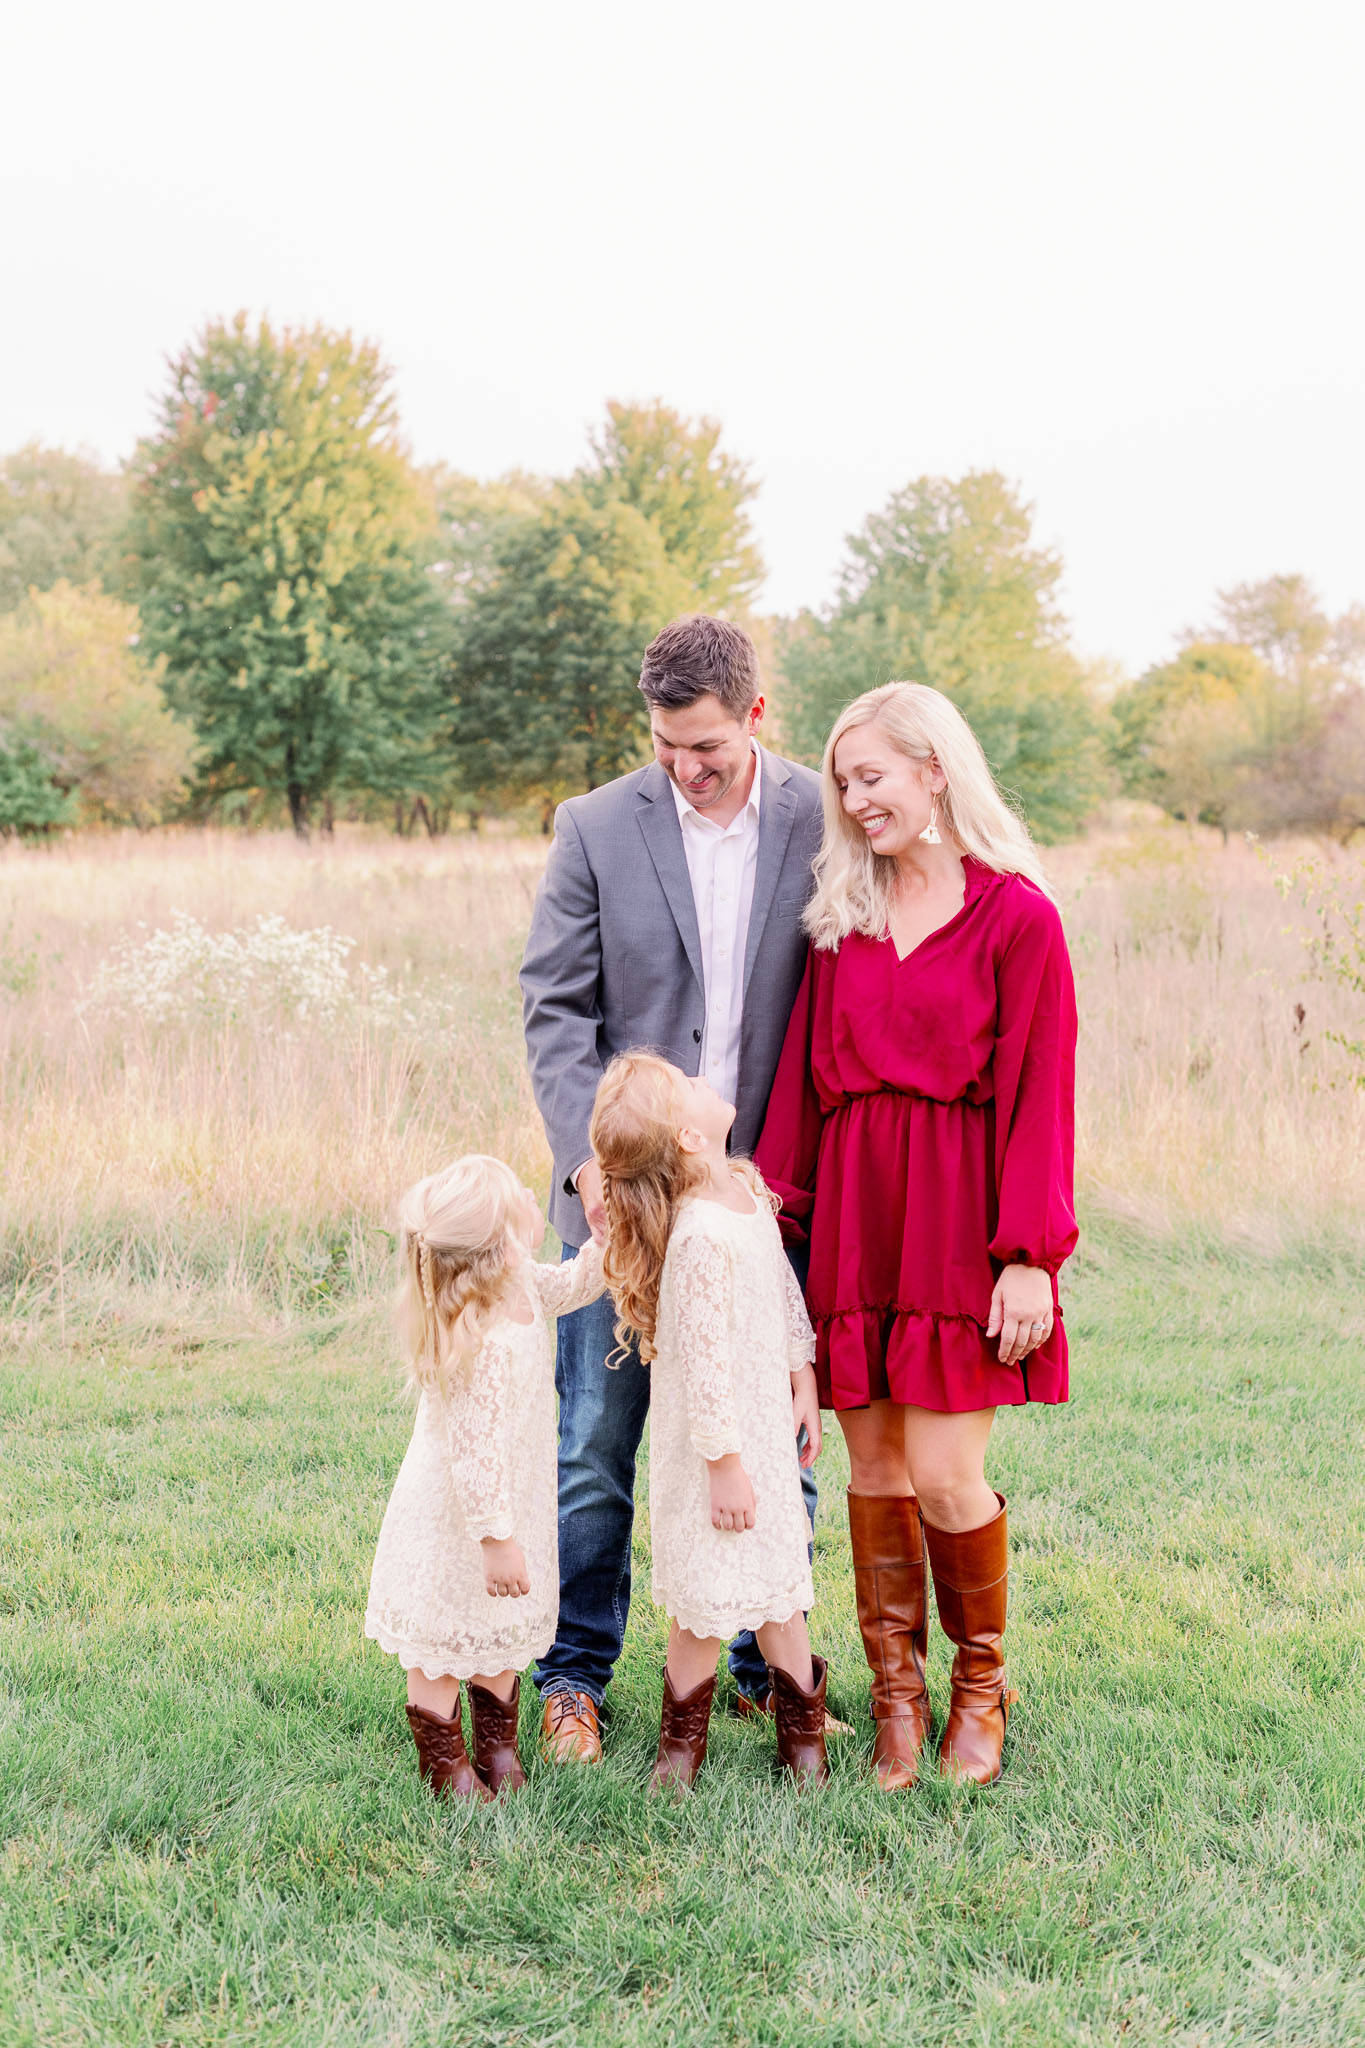 Chicago Lifestyle Family Photographer – St Charles Fall Family Photos-15